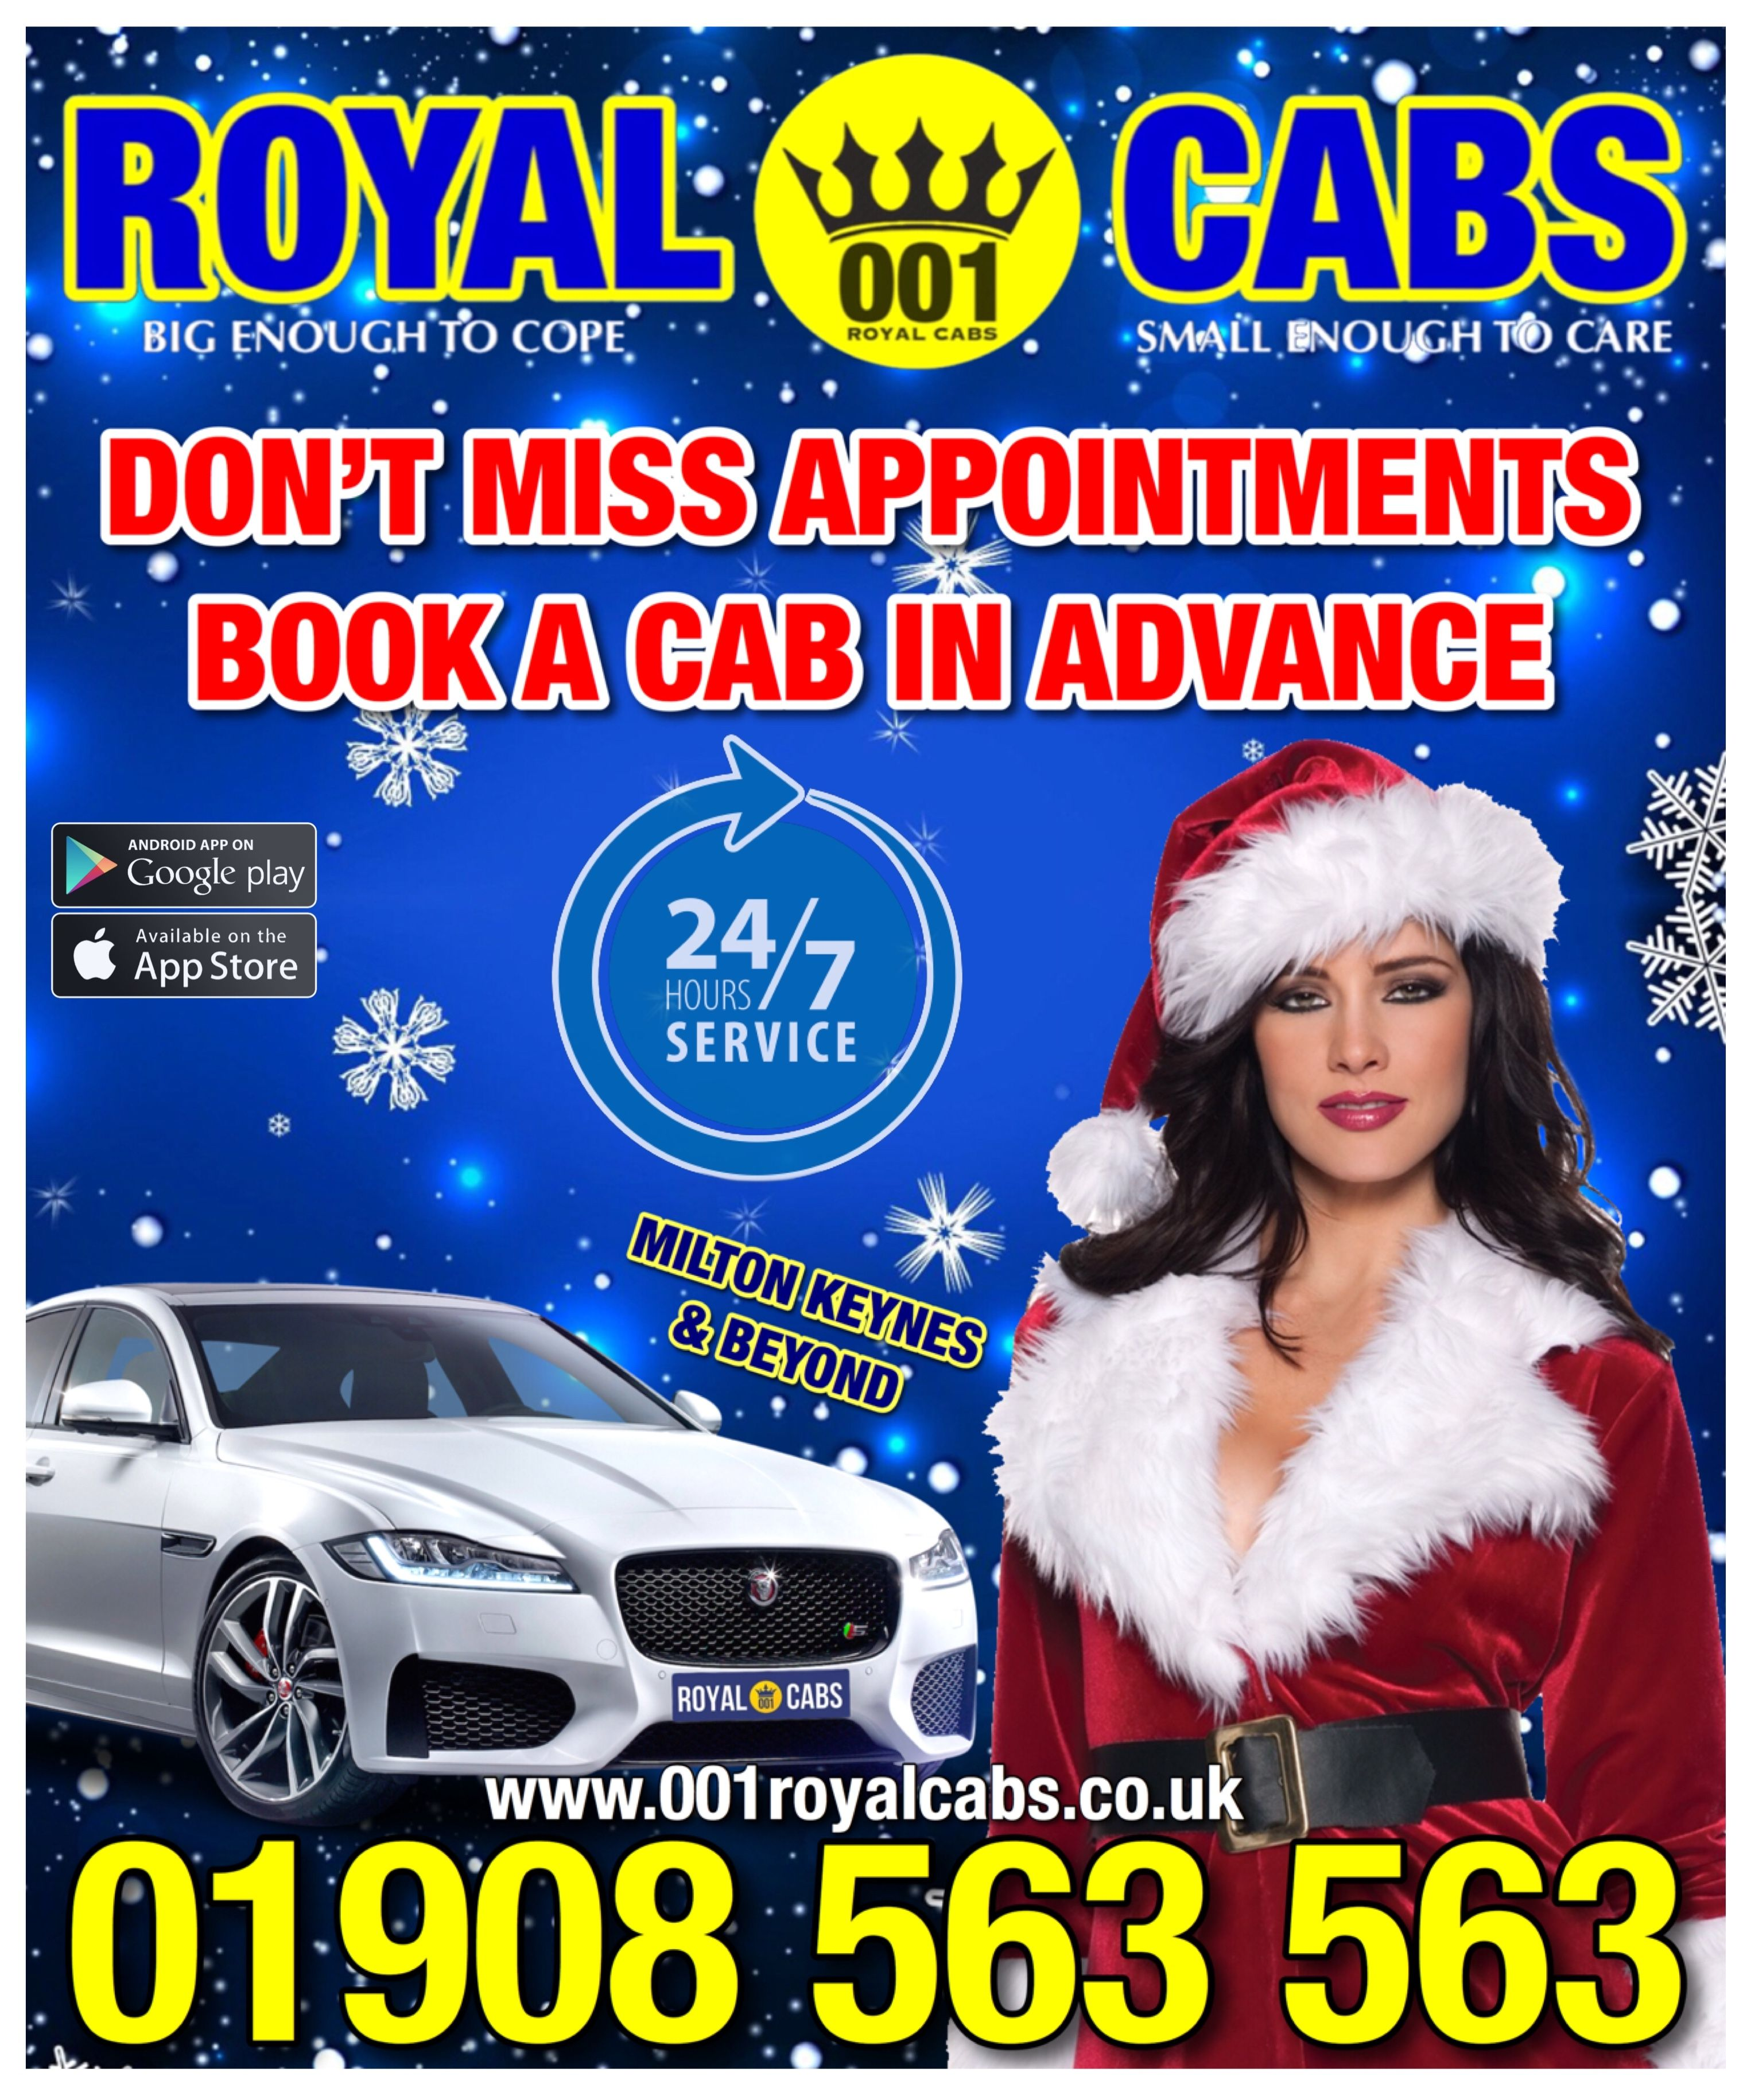 Dont miss appointments book a cab in advance download